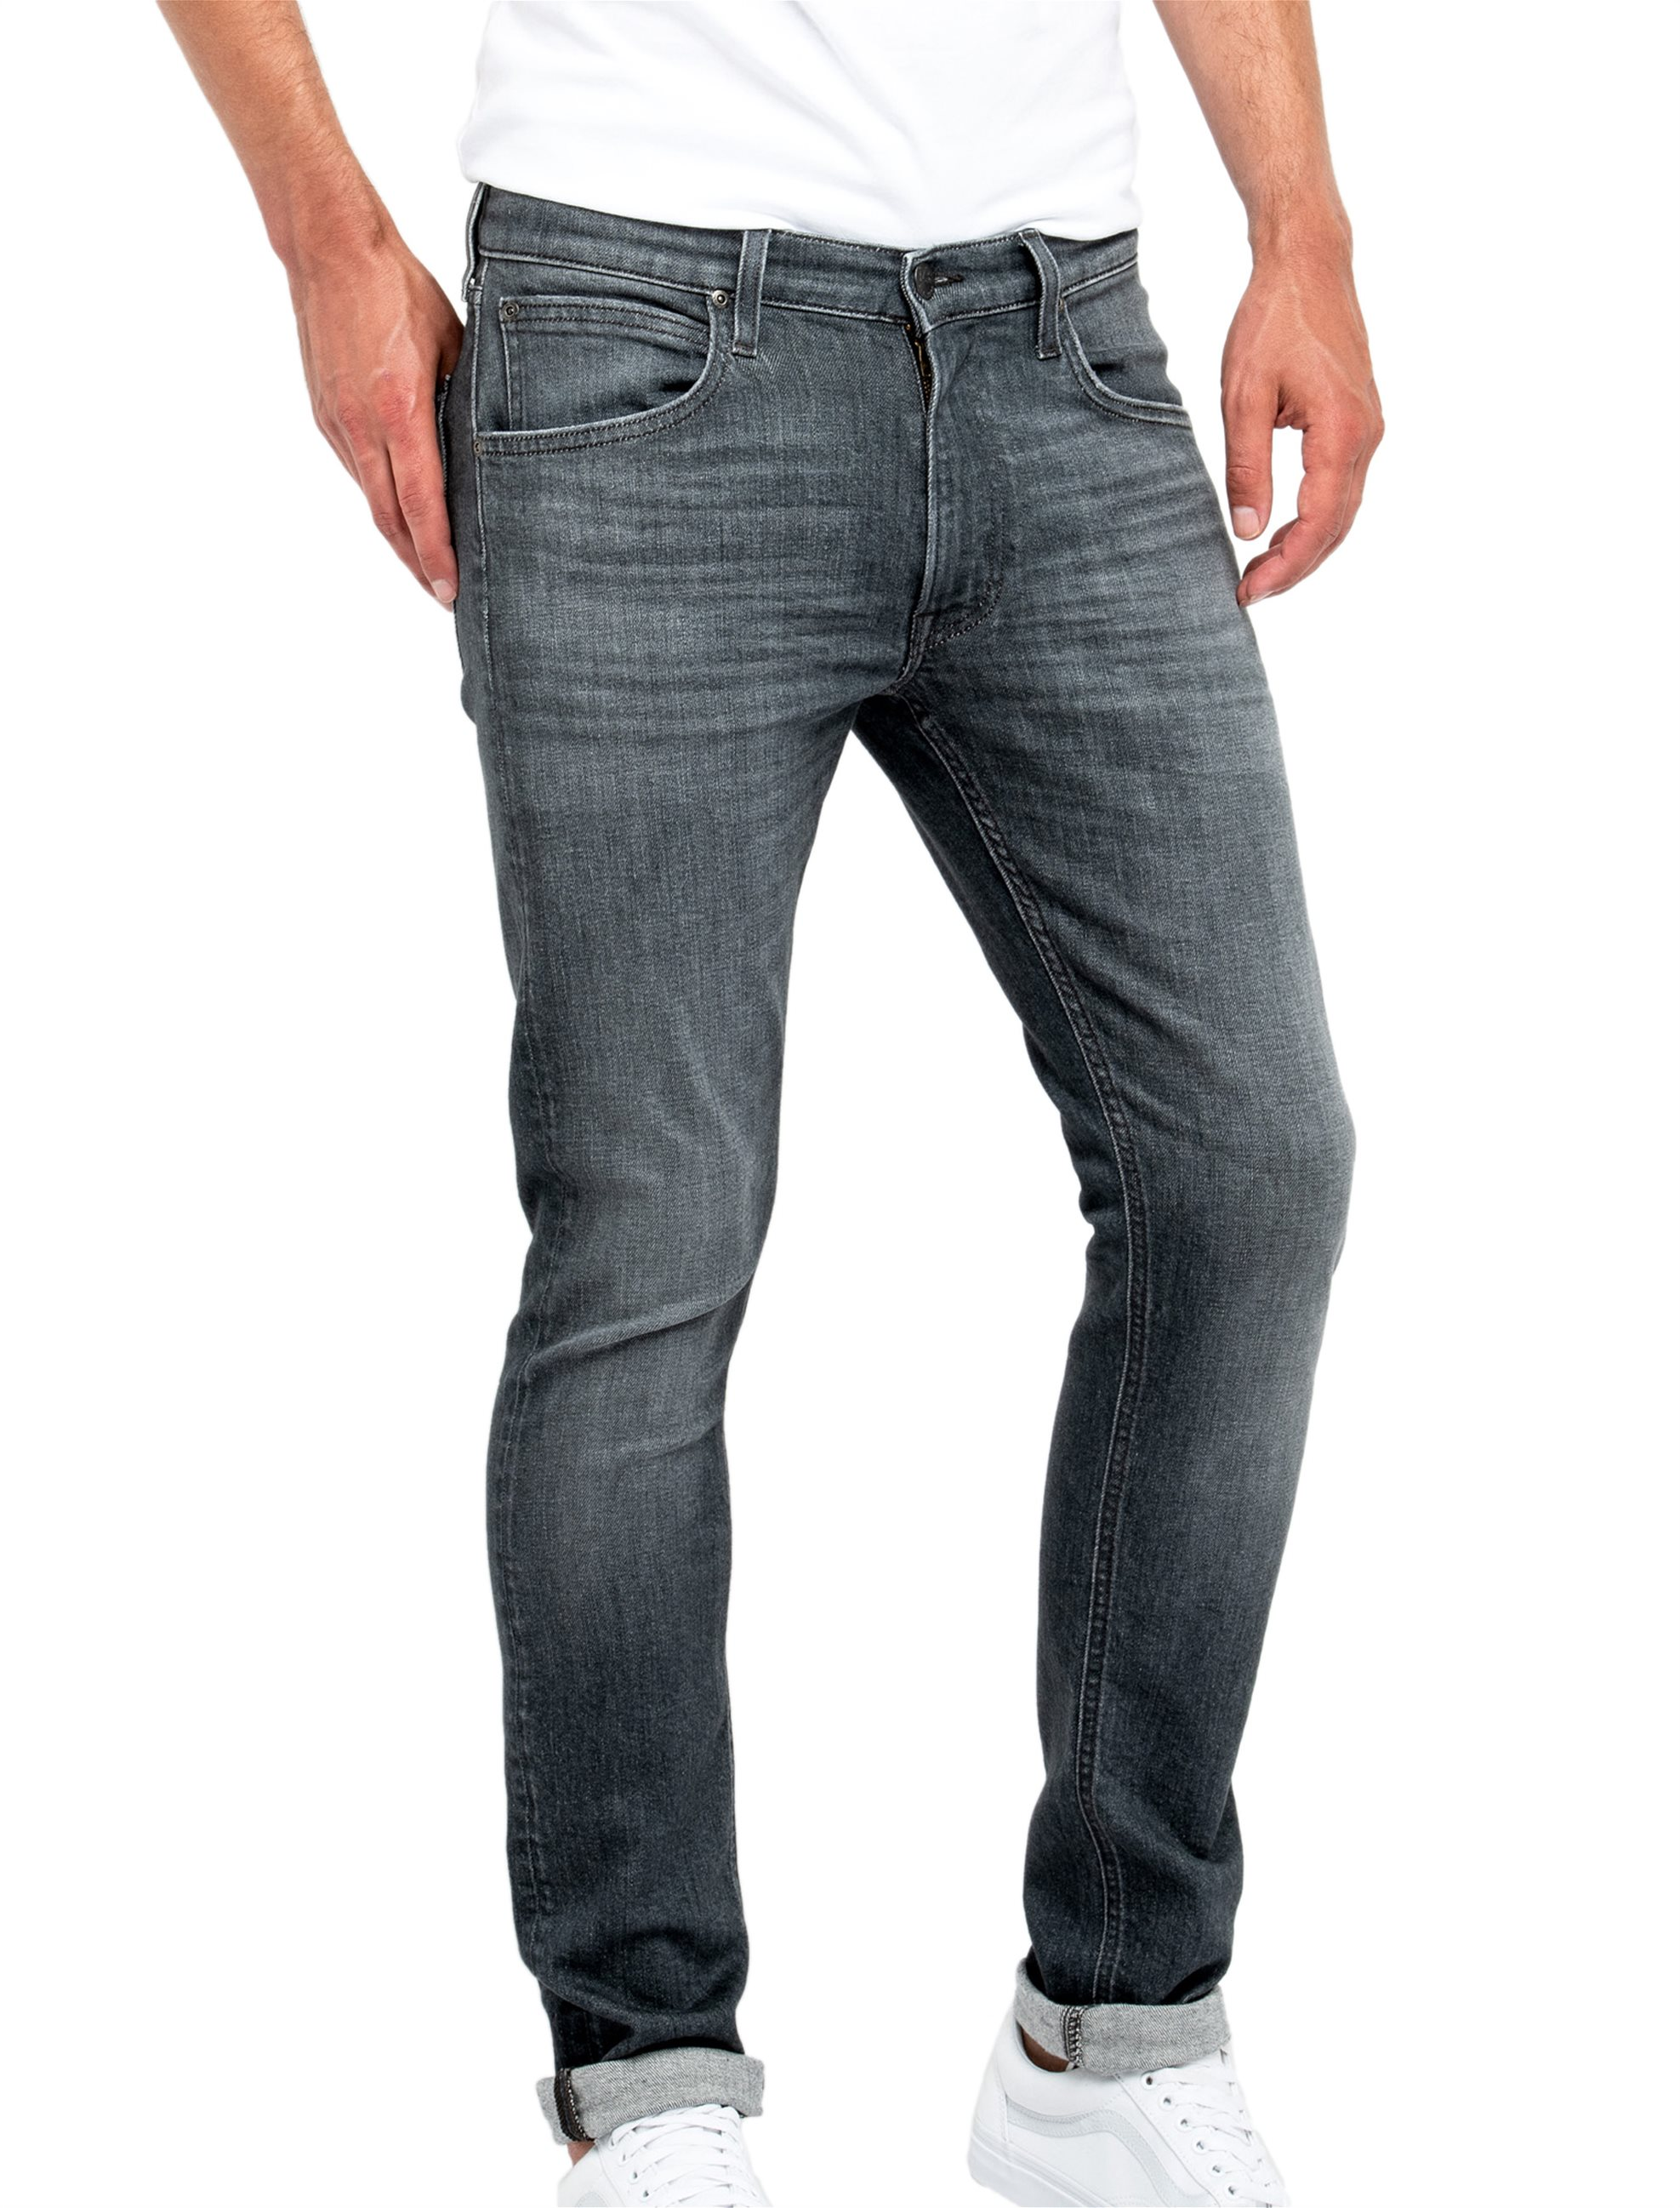 Lee Luke slim tapered ανδρικό τζην παντελόνι Grey Used - L719FQSF - Γκρι ανδρασ   ρουχα   jeans   slim   tapered